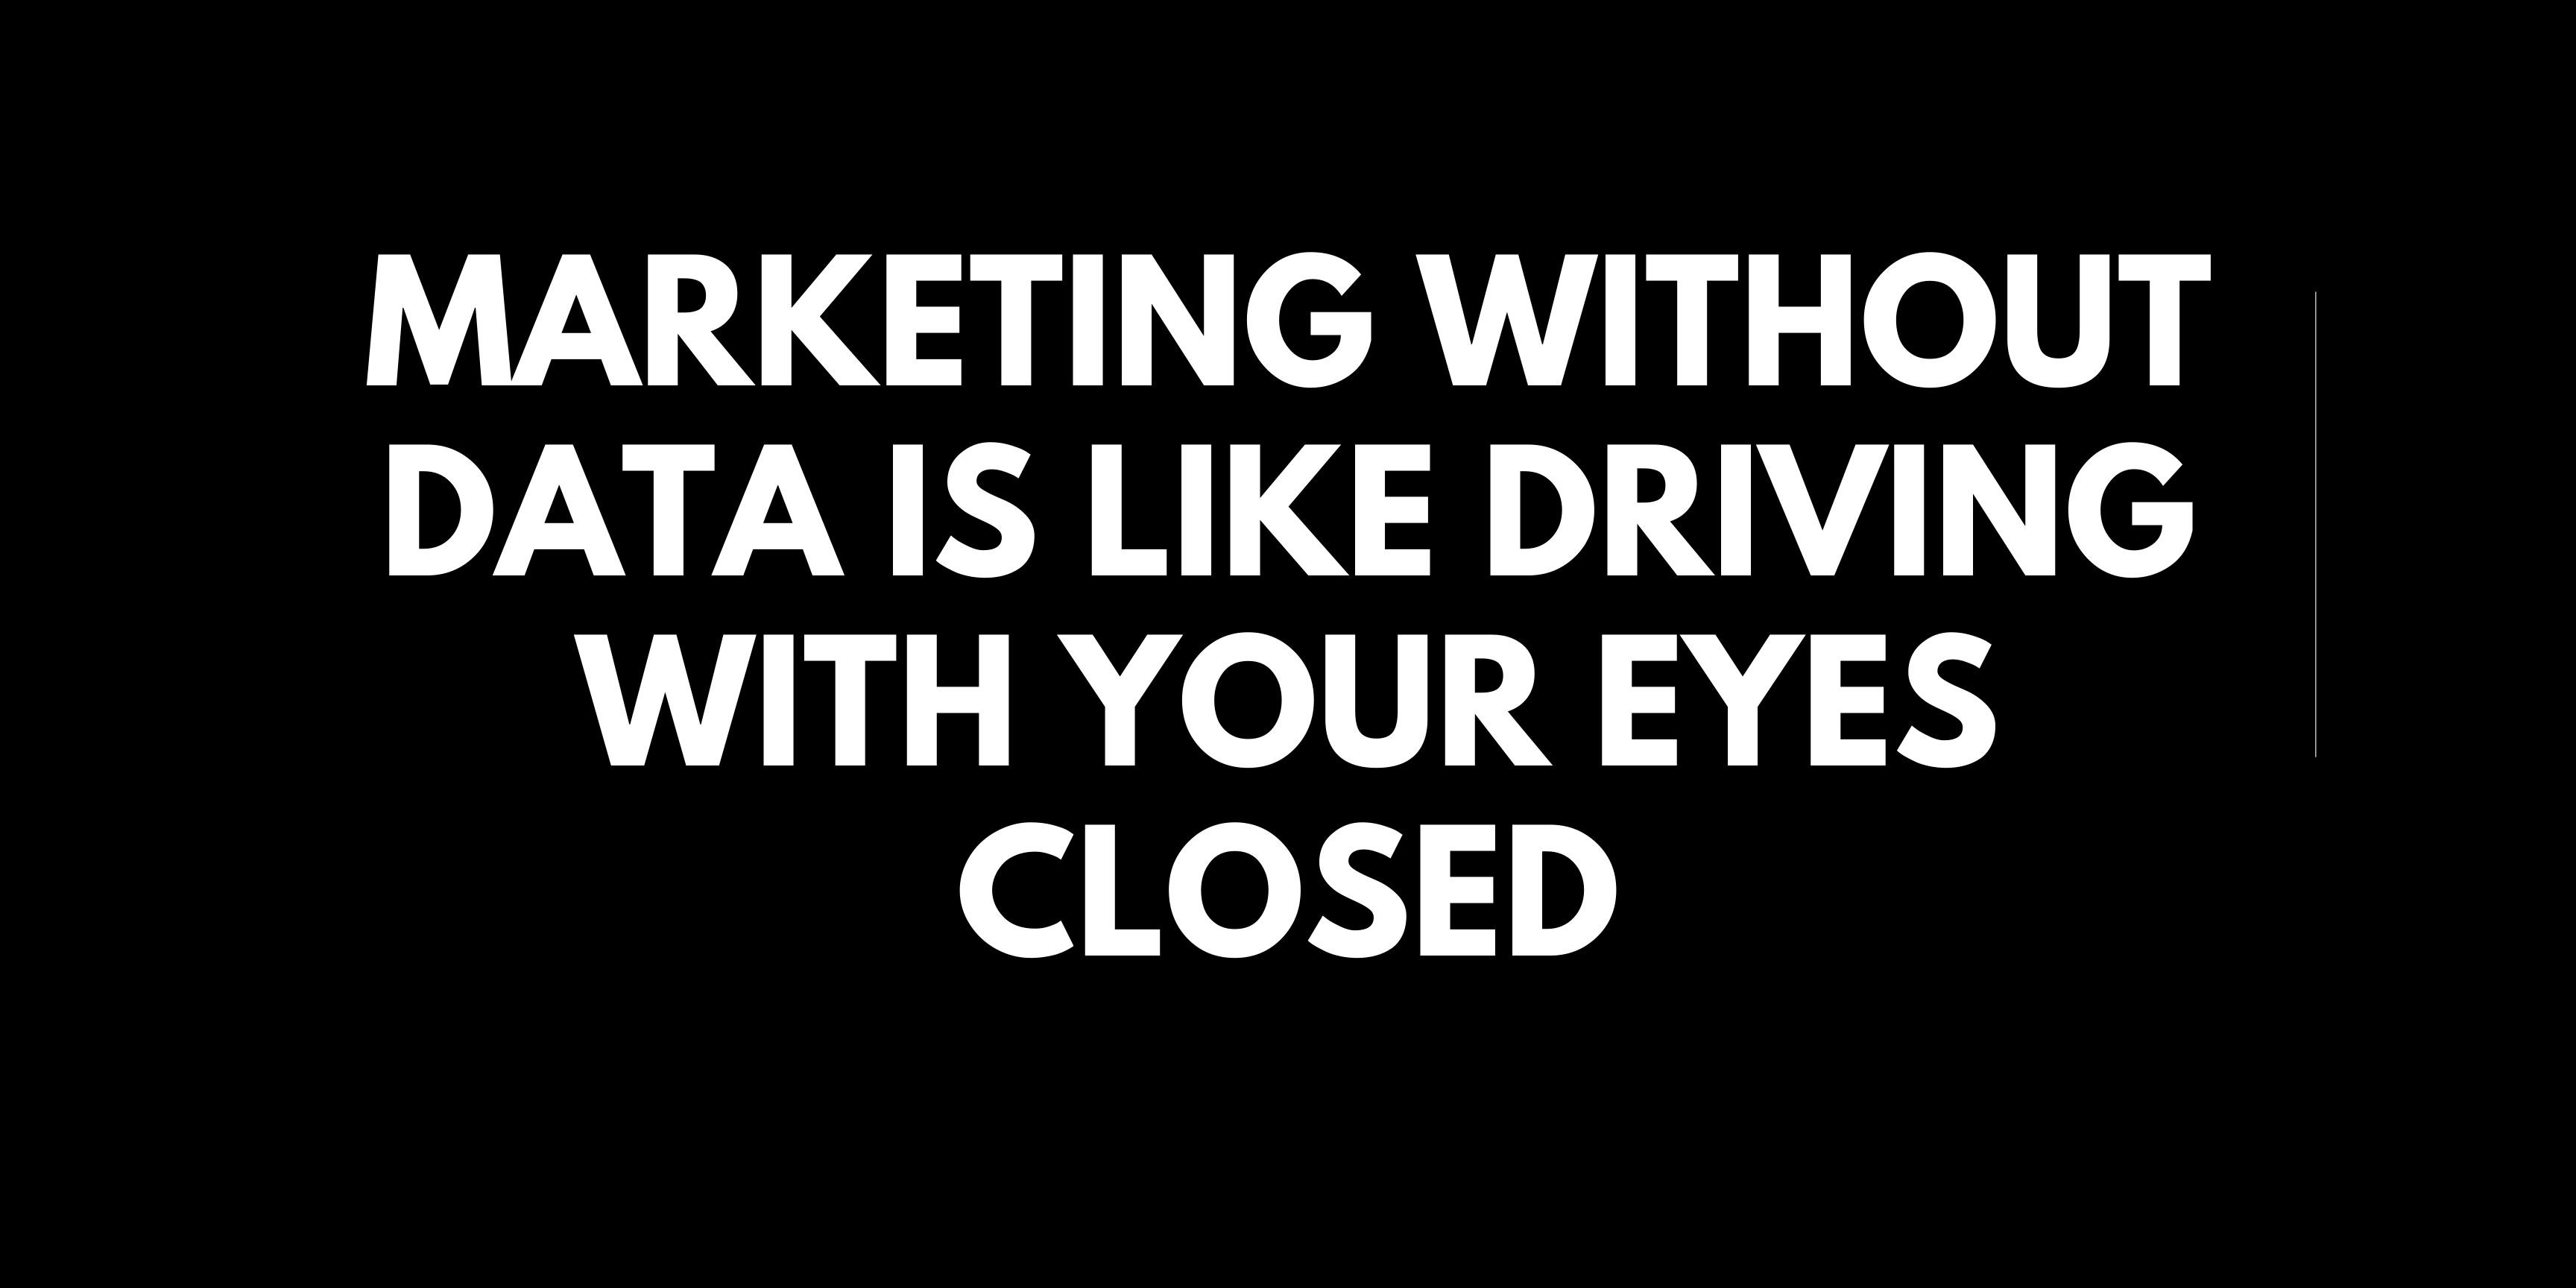 Marketing without data is like driving with your eyes closed